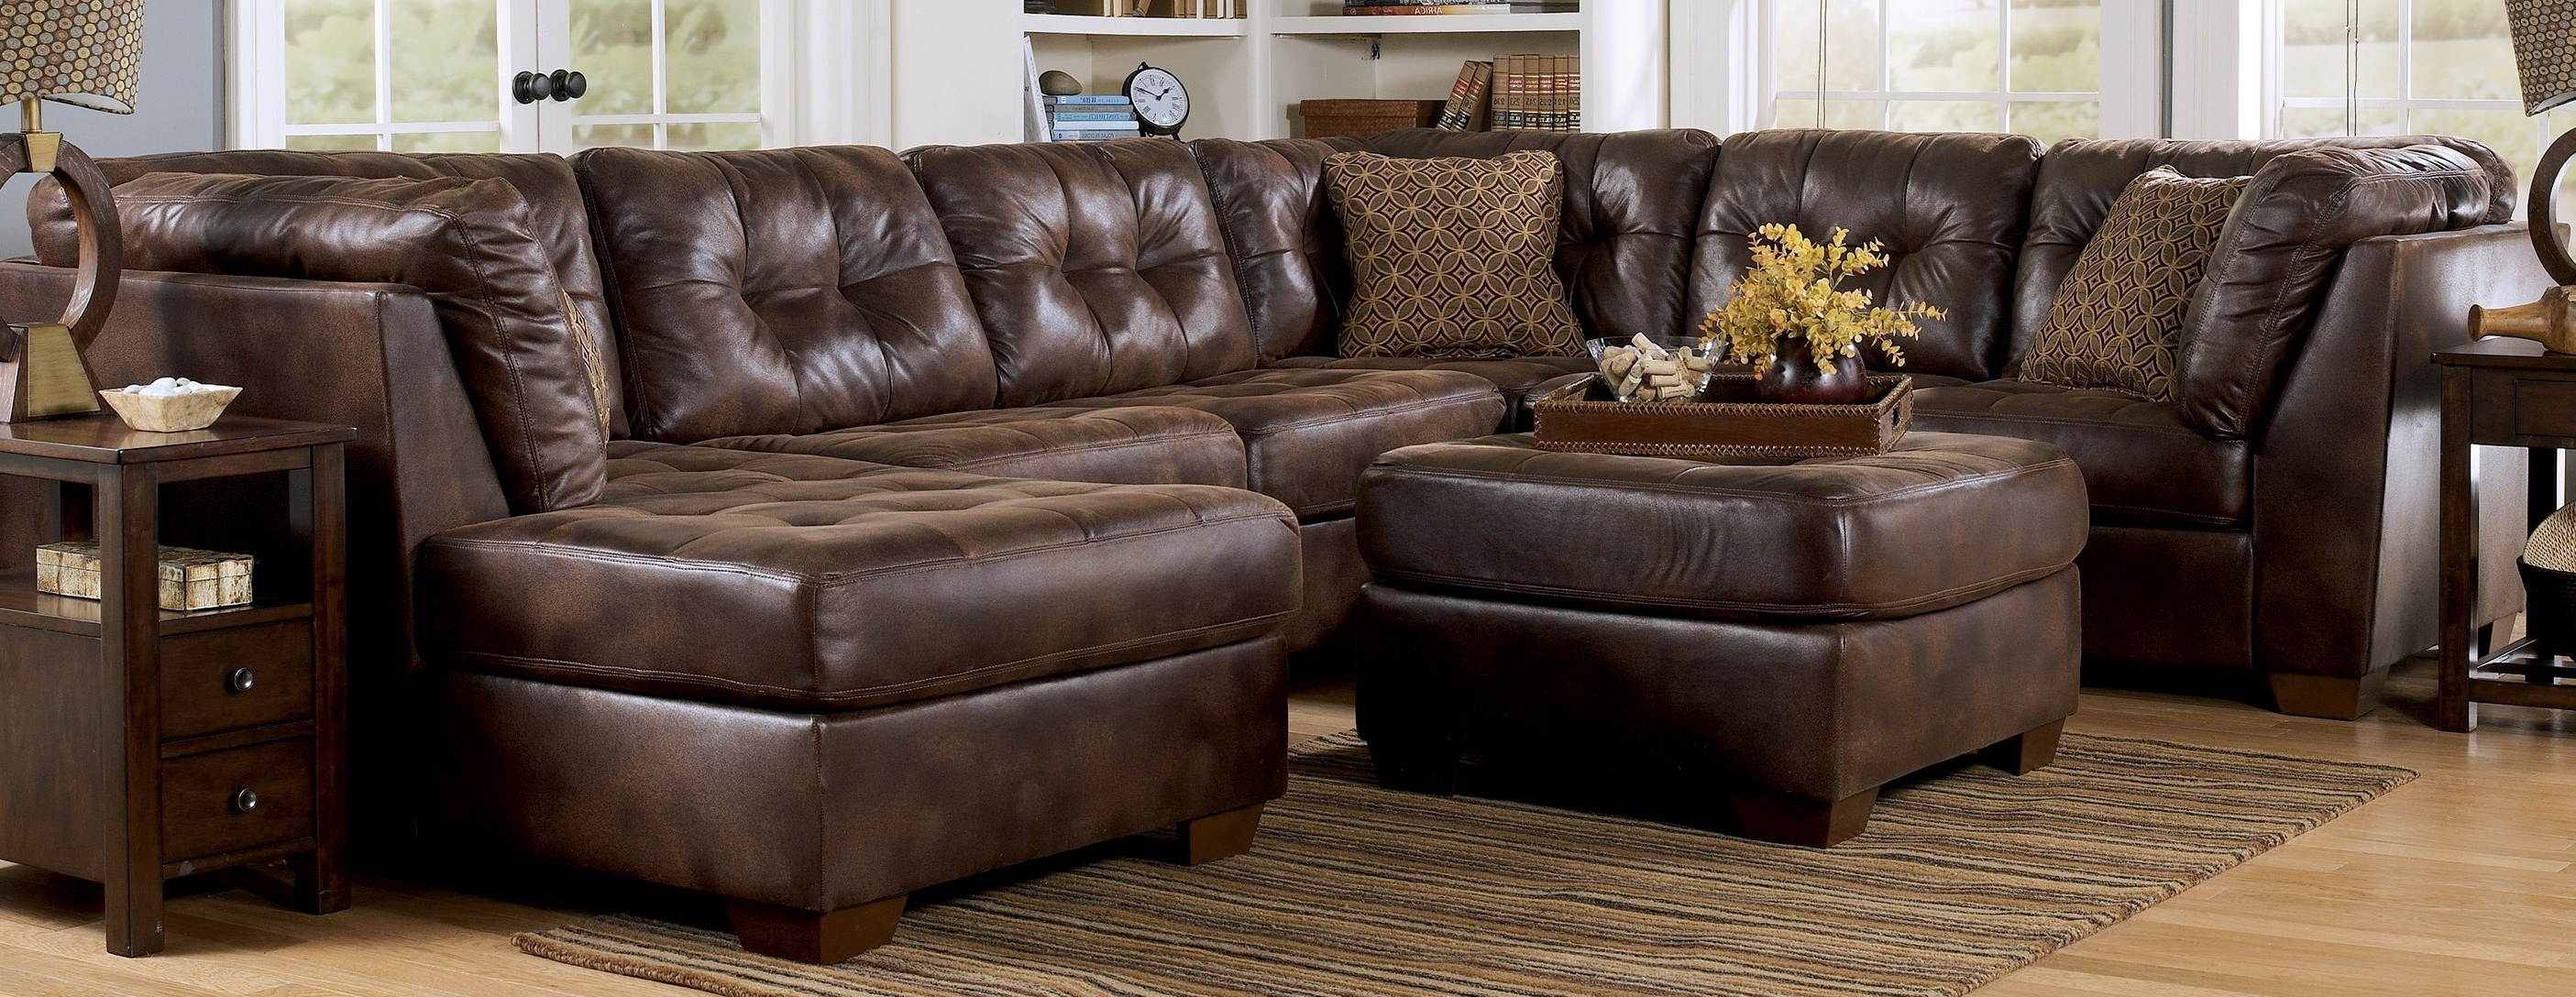 Luxury Leather Sectional Sleeper Sofa With Chaise 34 Contemporary For Widely Used Leather Sectionals With Chaise (View 9 of 15)